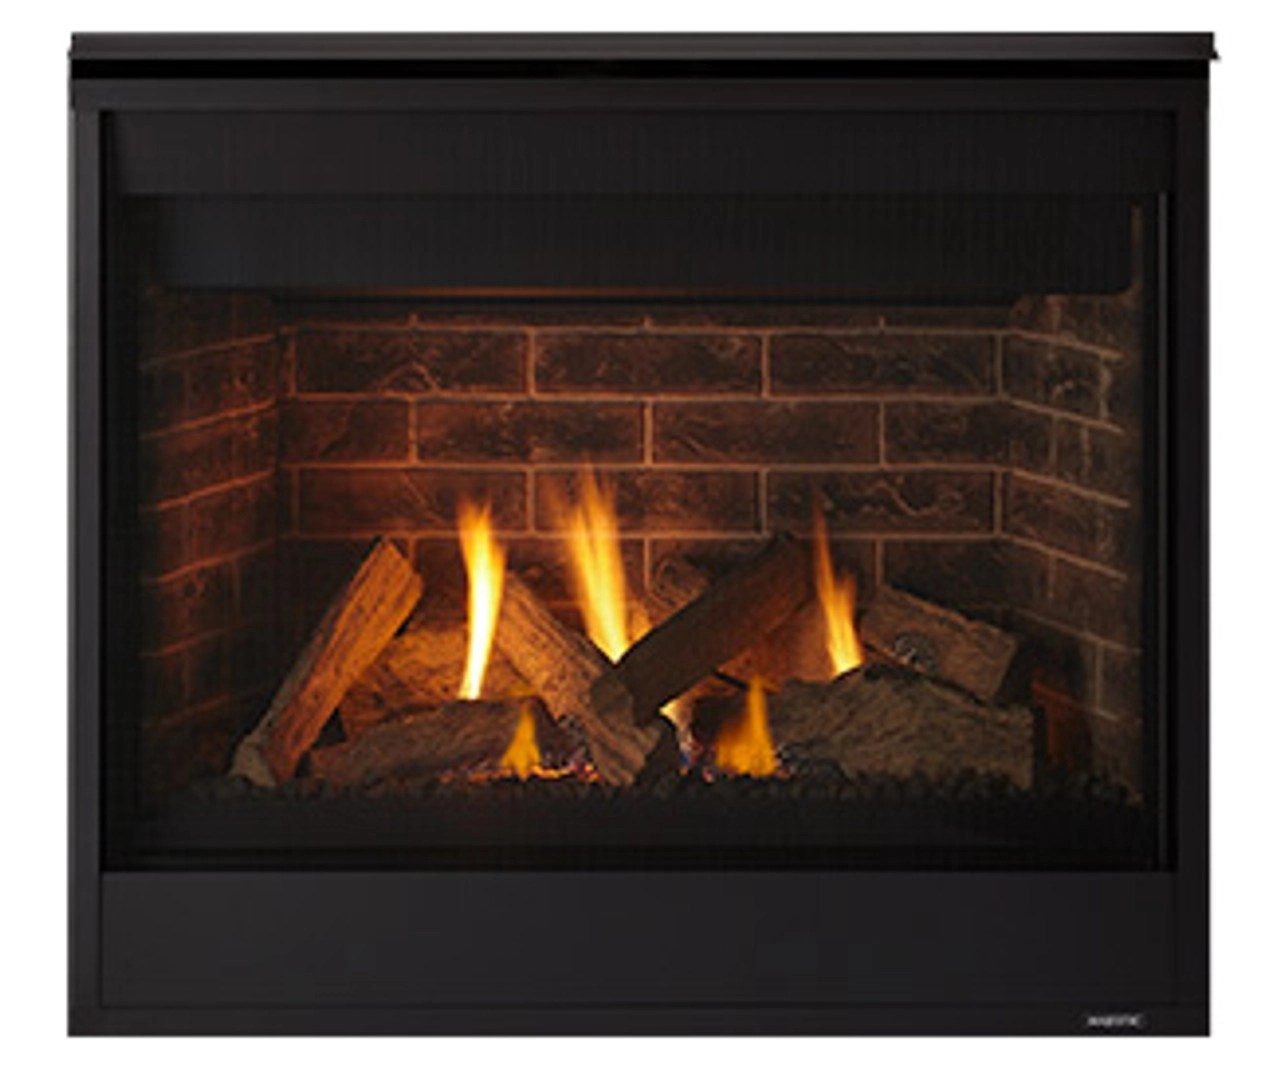 hight resolution of majestic gas fireplace wiring diagram fireplaces